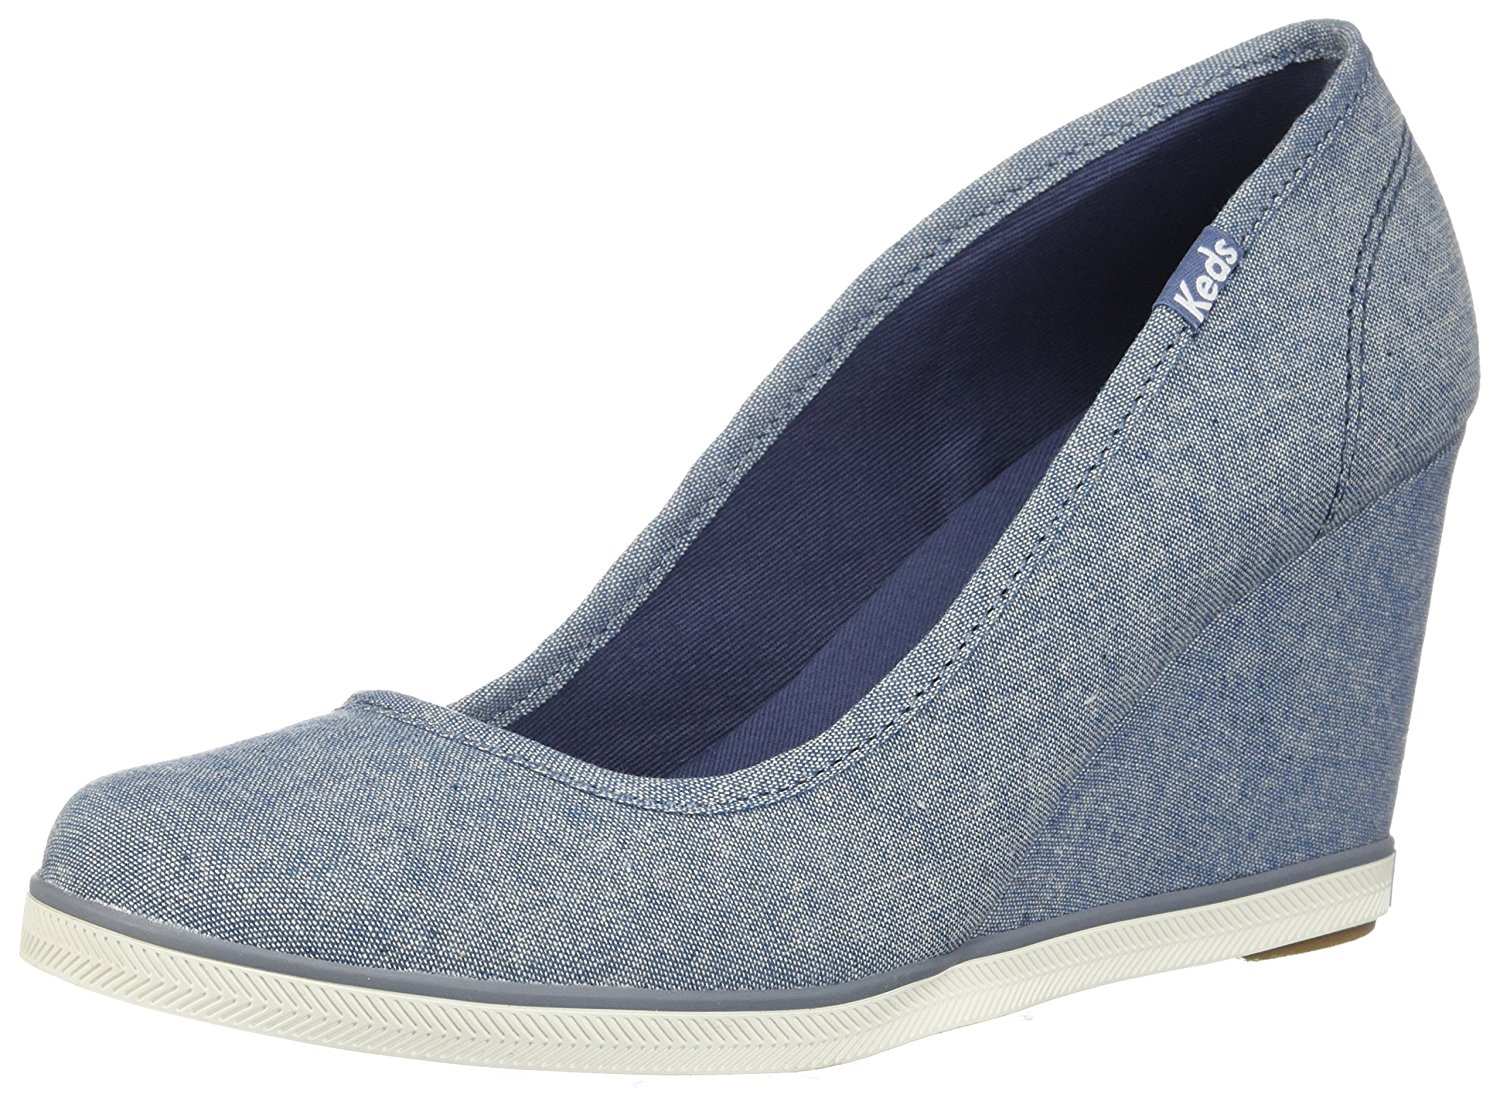 6f5f801179e Get Quotations · Keds Women s Damsel Chambray Wedge